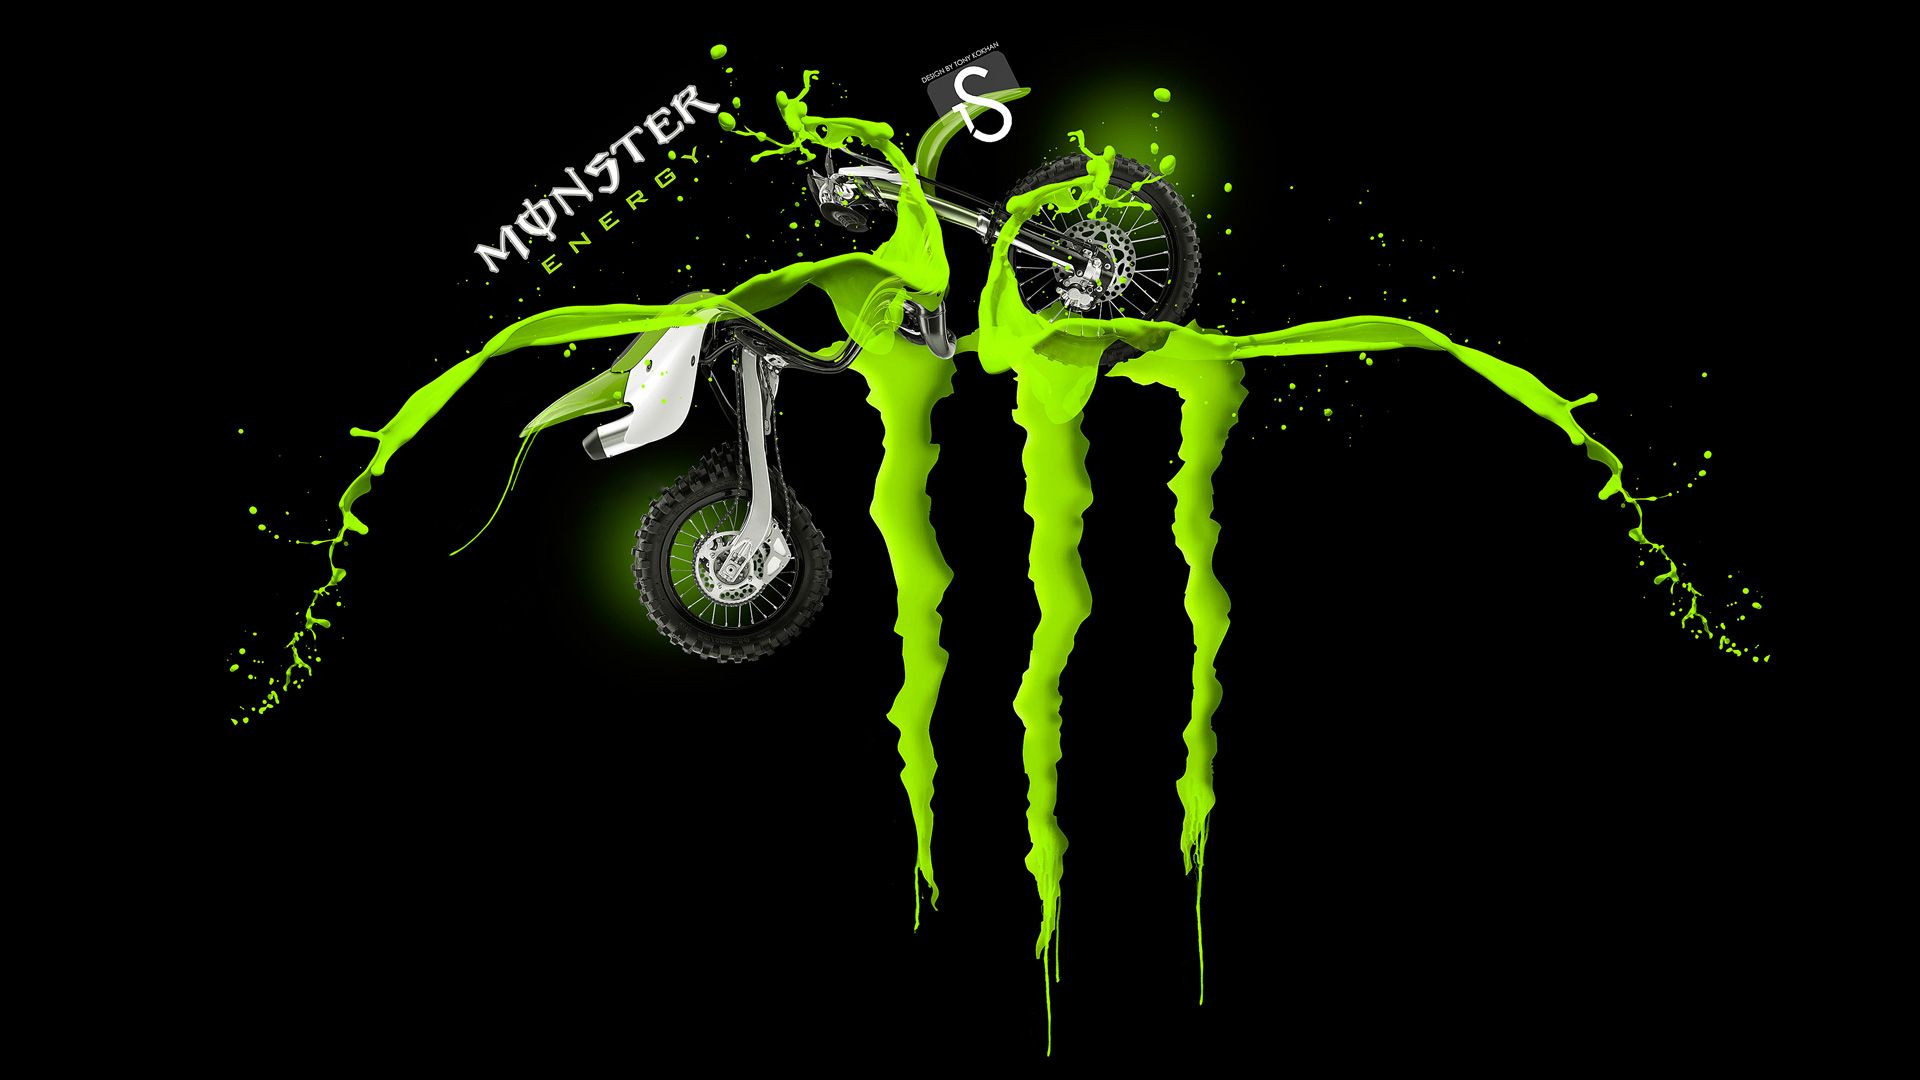 Monster Wallpaper – The Only Custom, Hand Made wallpaper You'll Ever Need